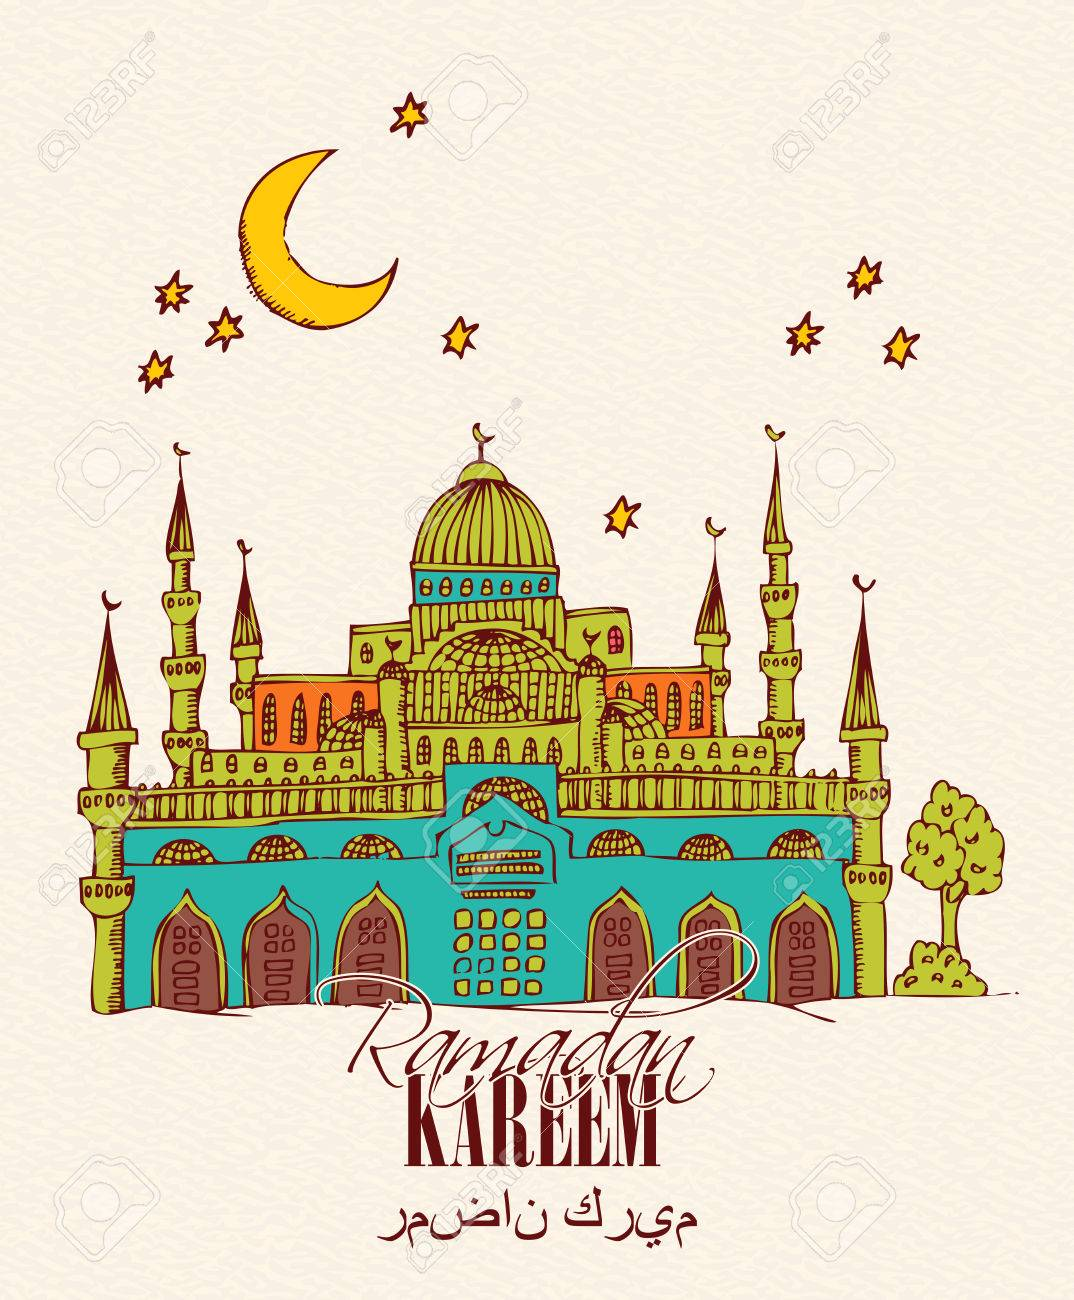 Creative greeting card design for holy month of muslim community creative greeting card design for holy month of muslim community festival ramadan kareem stock vector m4hsunfo